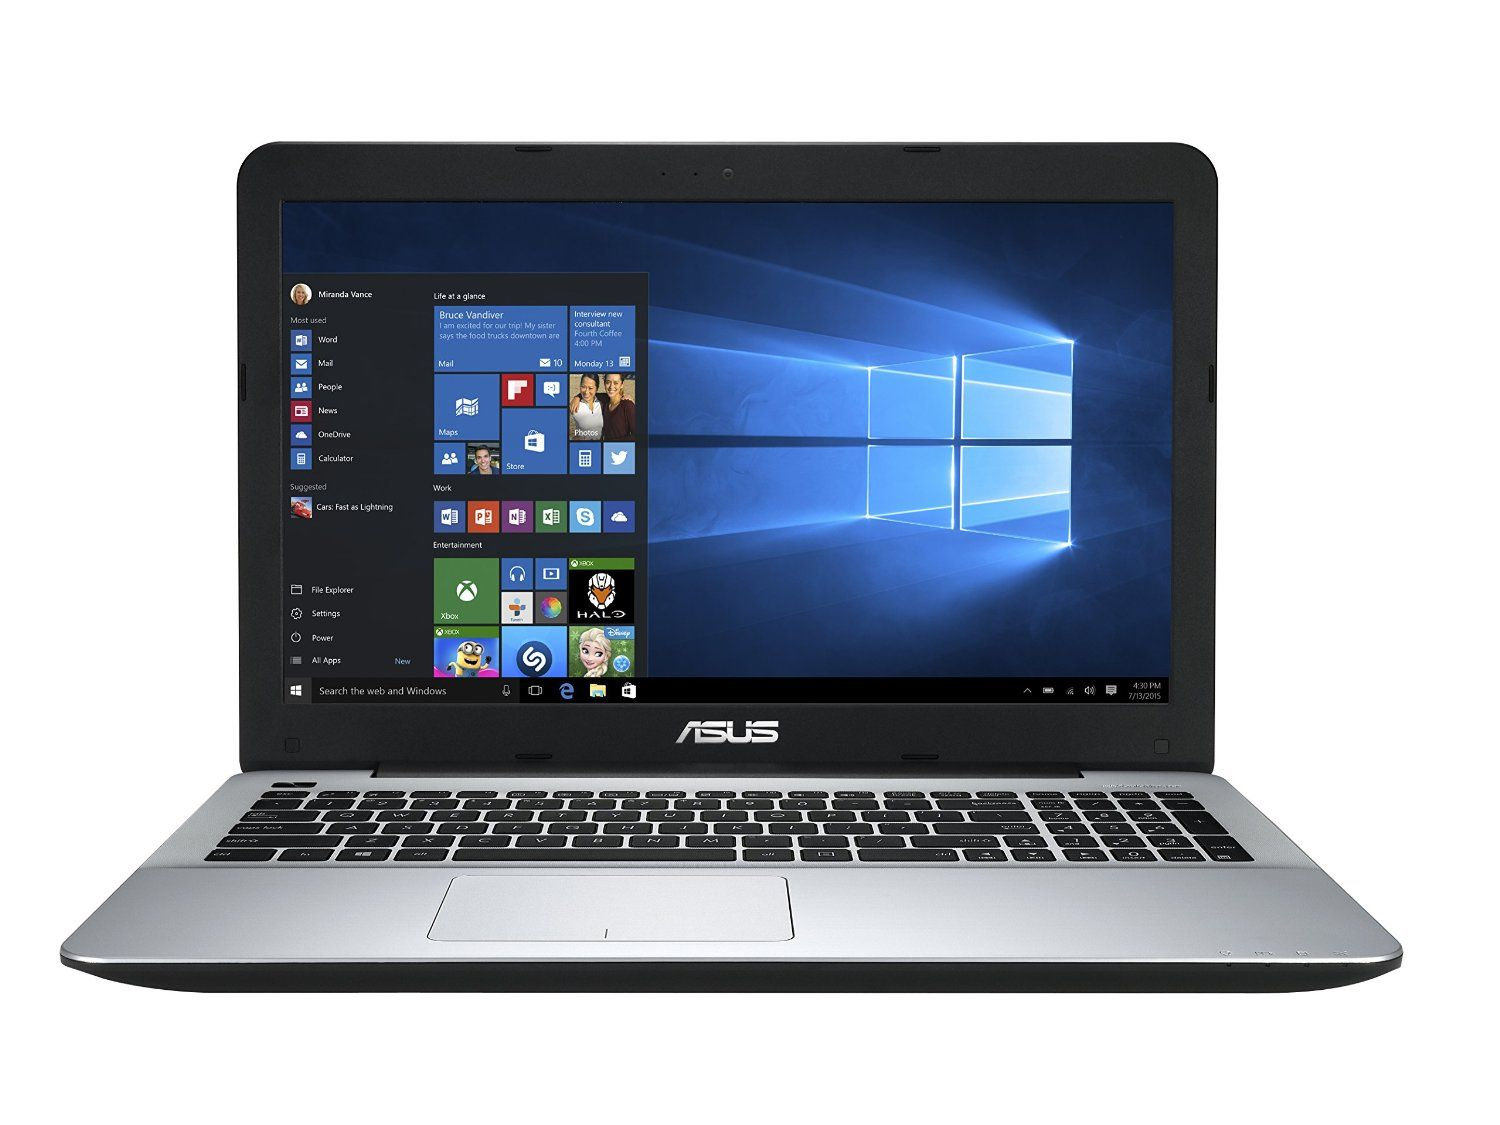 Vente Pc Portable Asus F555ua Eh71 15 6 Inch Intel Core I7 8gb 1tb Hdd Laptop